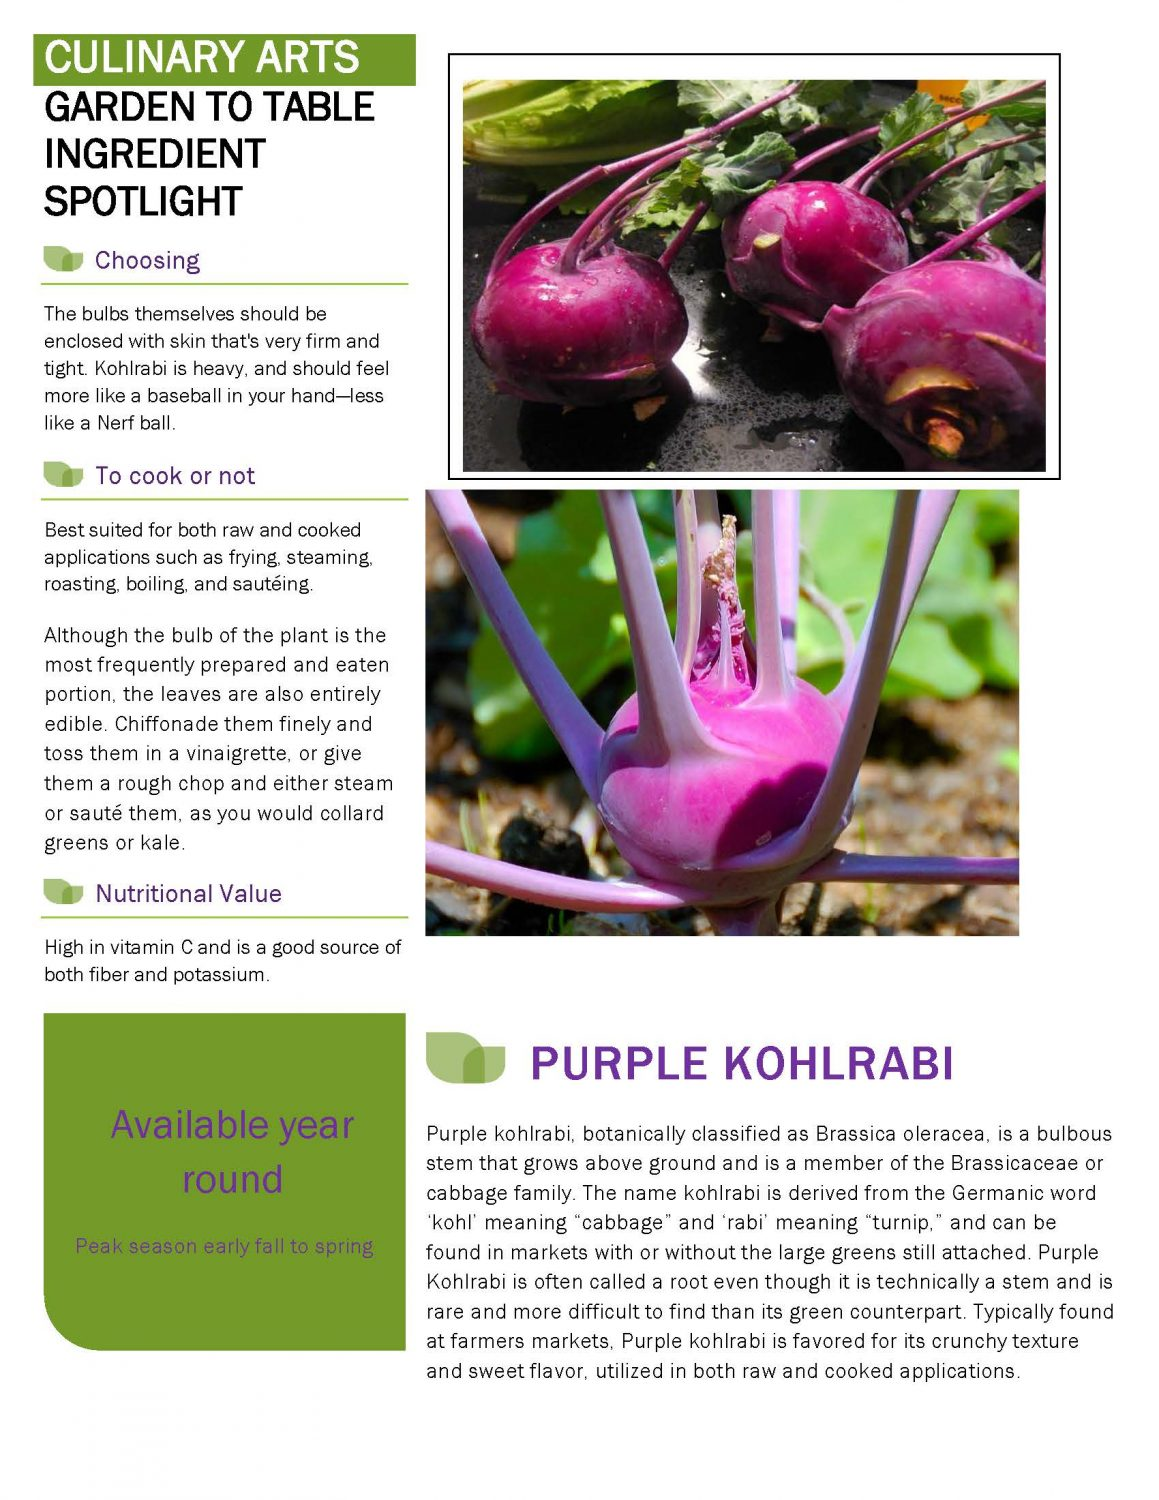 Culinary garden news letter 013120 Page 1 scaled Academic Affairs 01/31/20